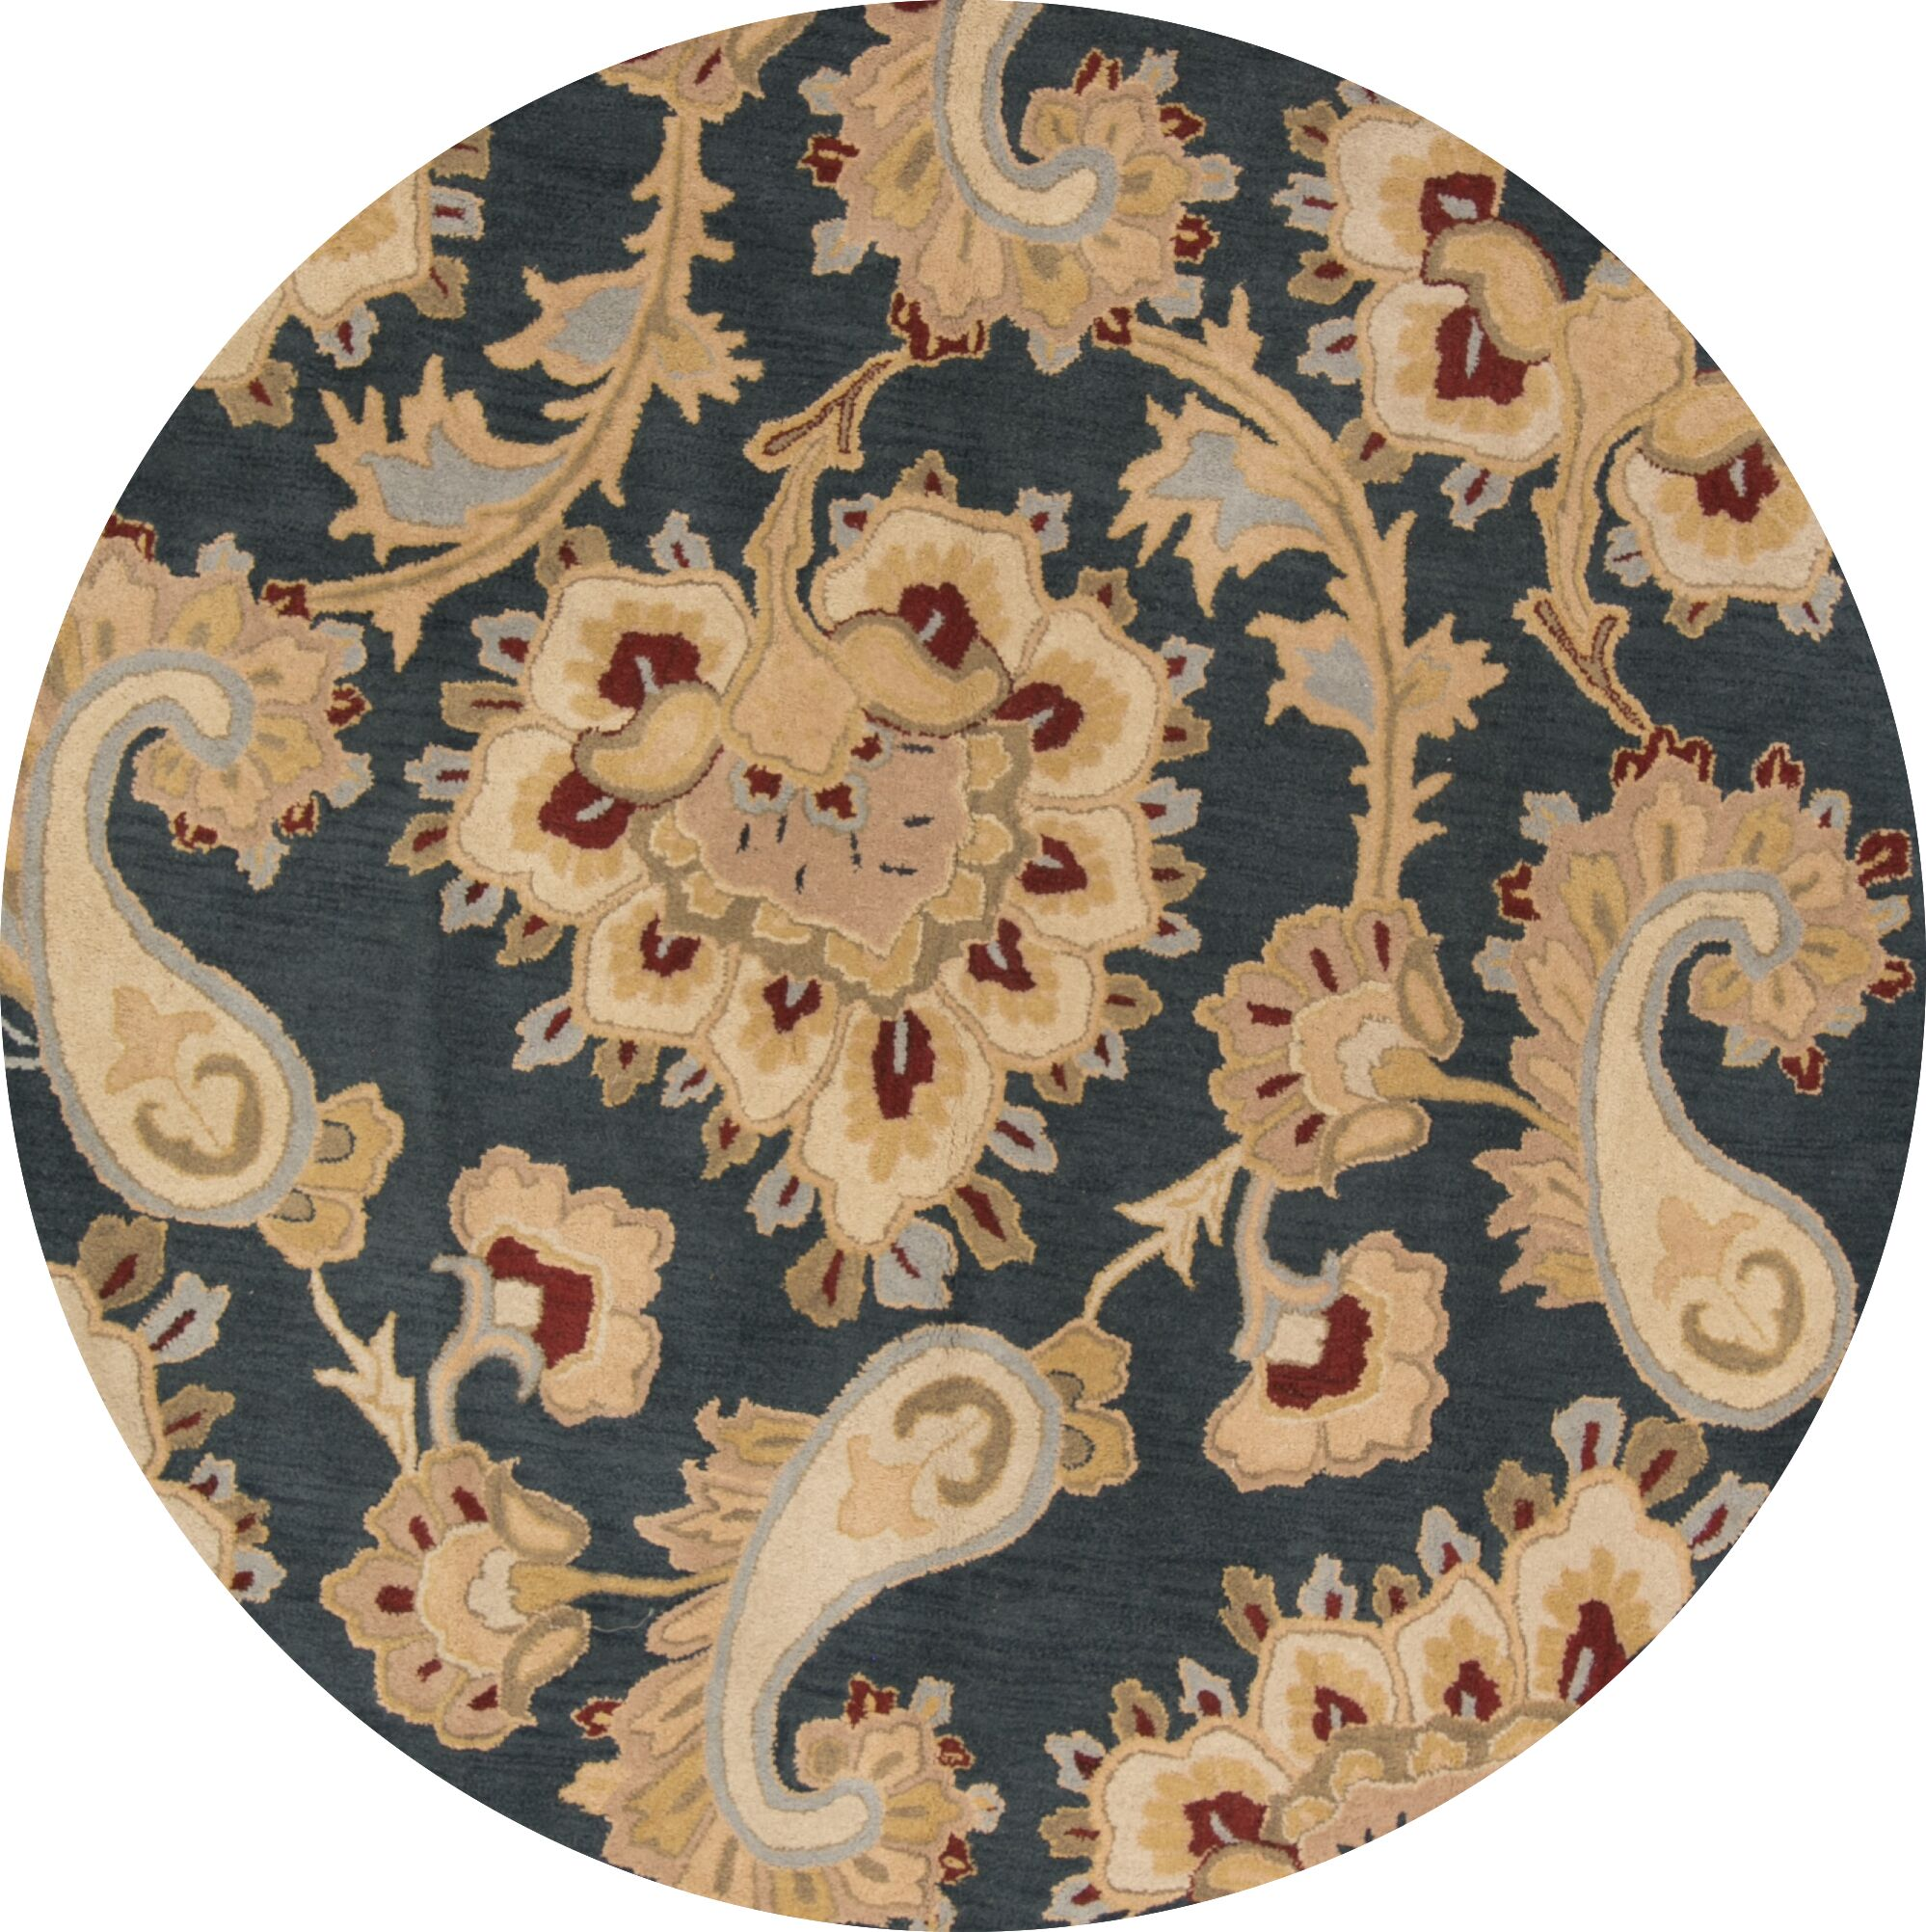 Bovill Agra Hand-Tufted Wool Brown/Green Area Rug